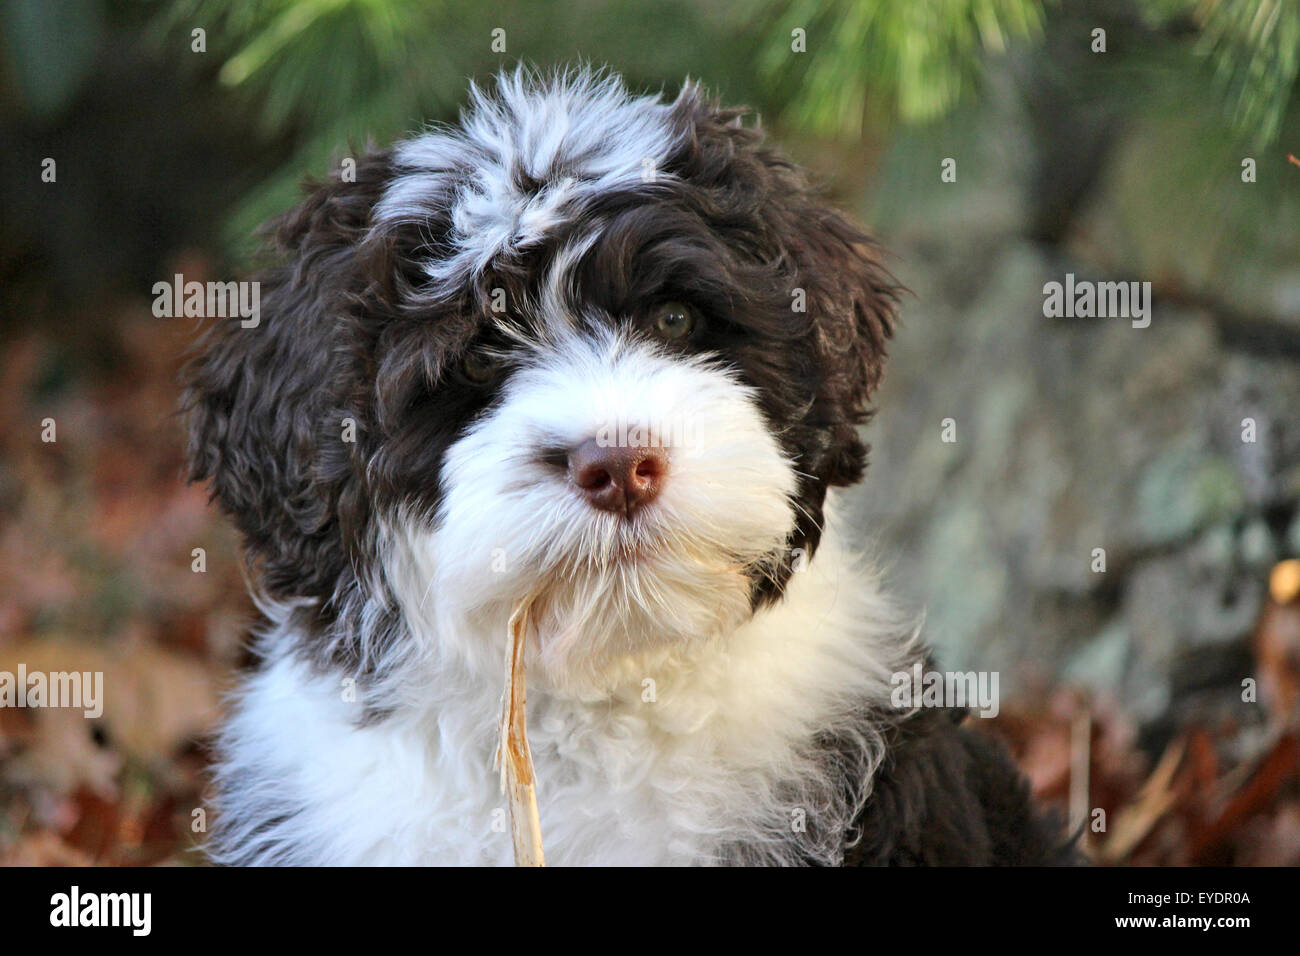 A young brown and white Portuguese water dog puppy chewing on a piece of straw - Stock Image